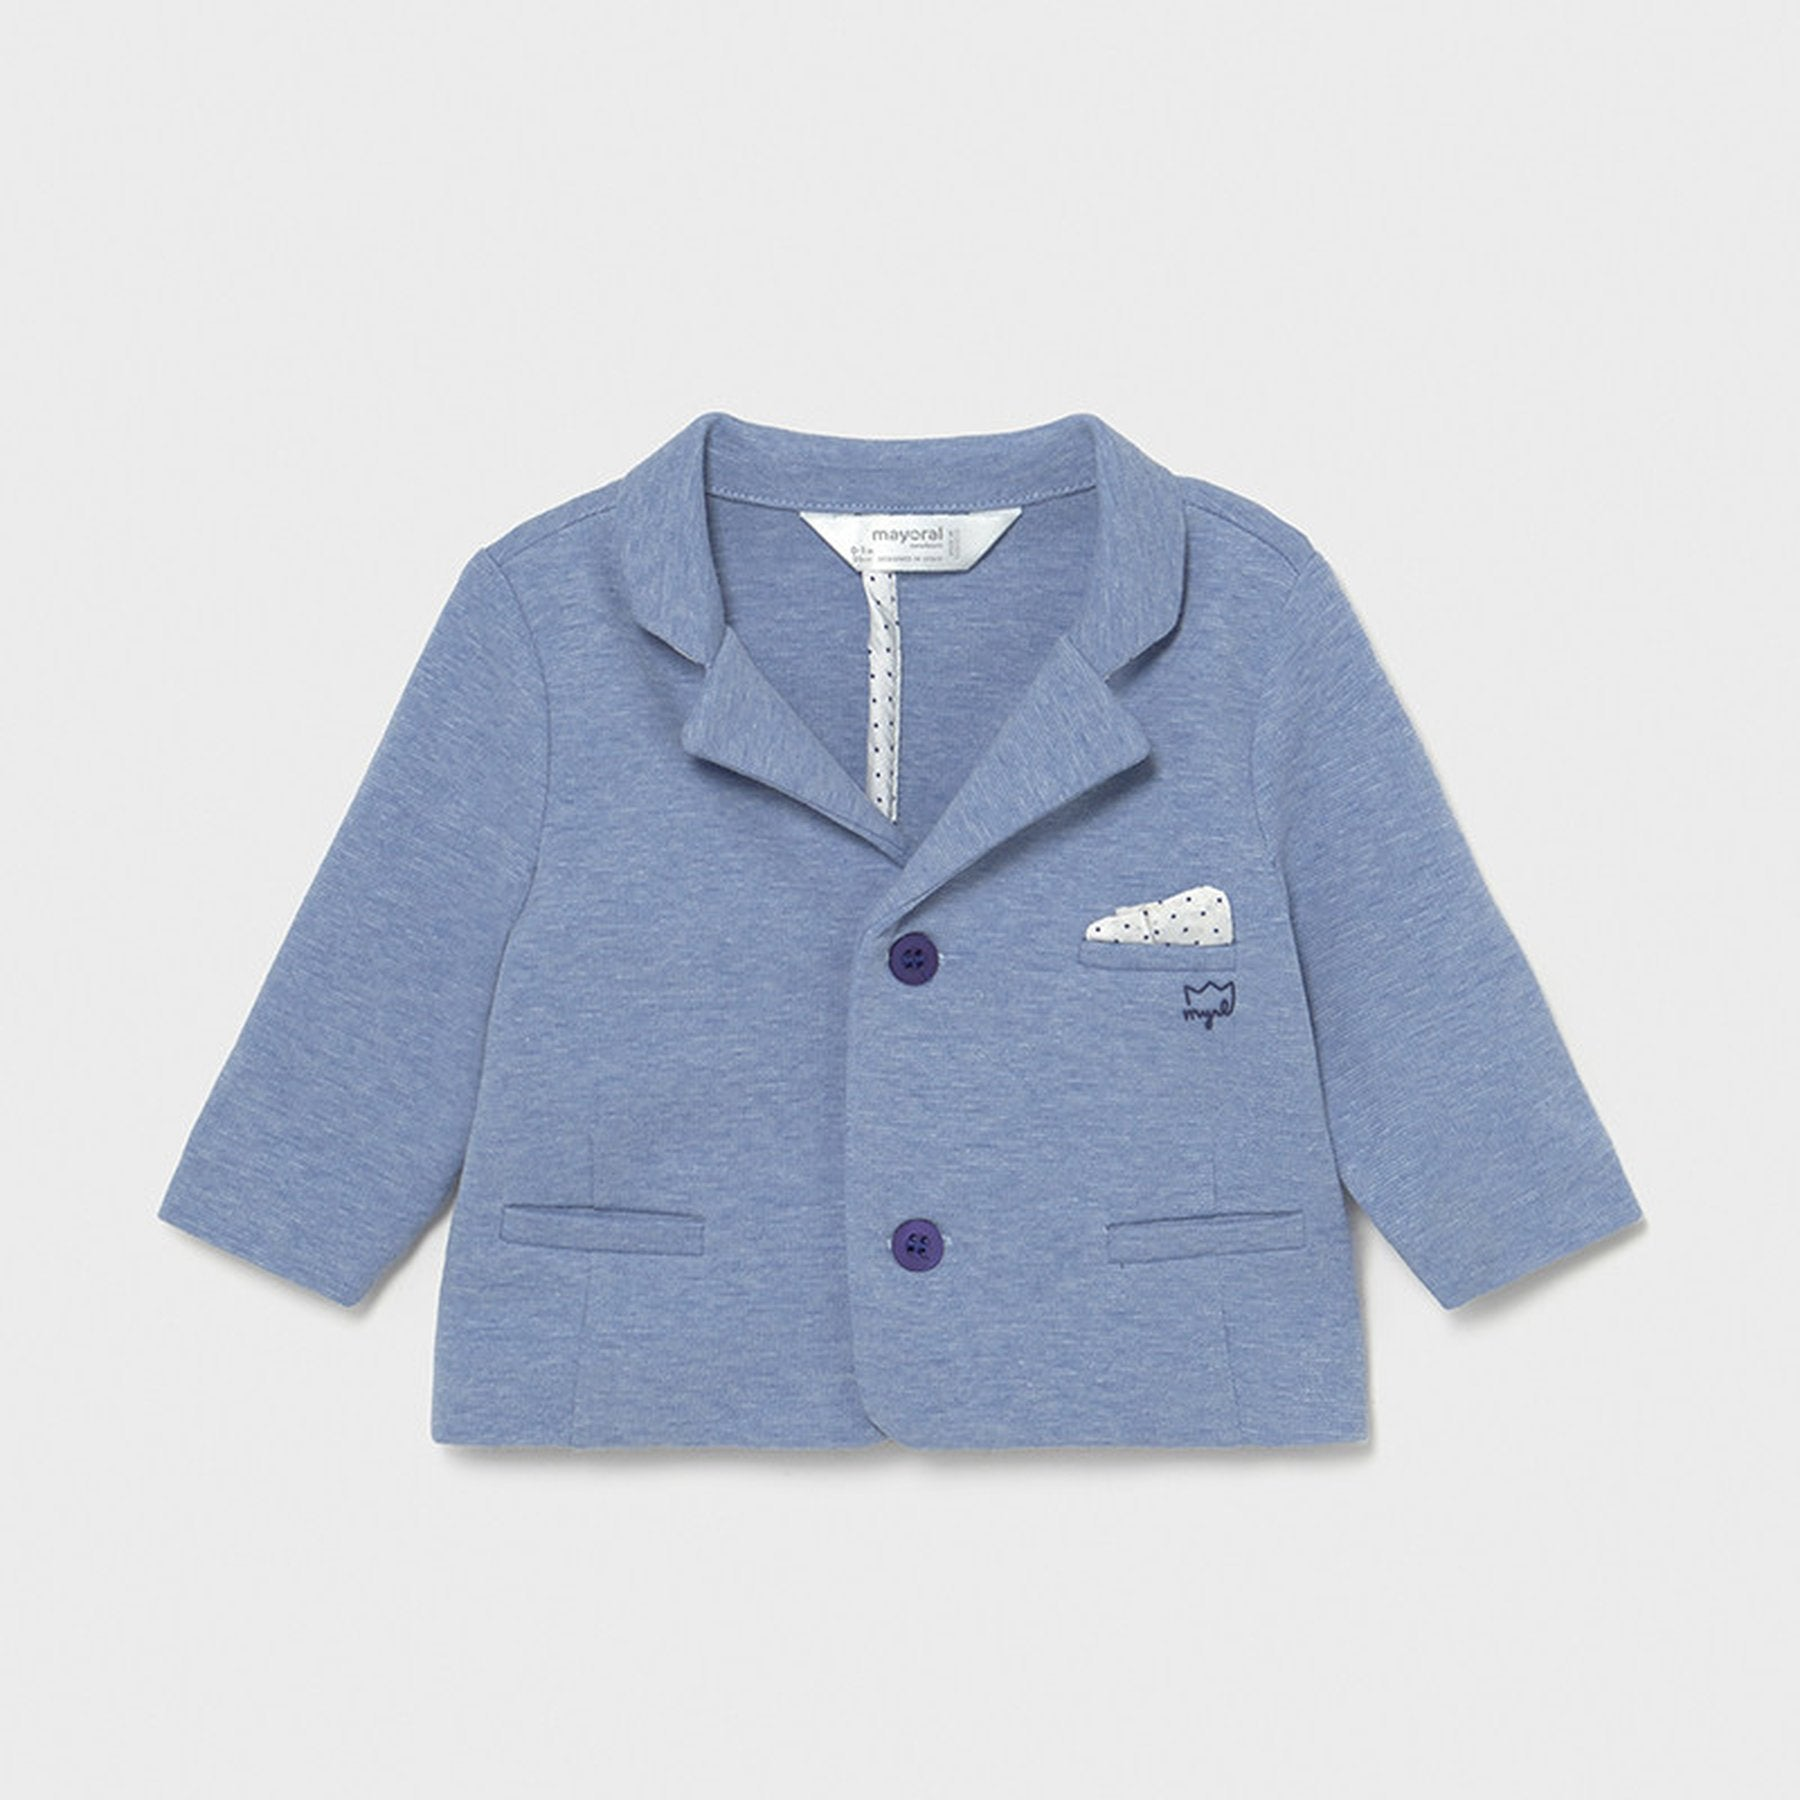 Mayoral Baby Boys Formal Jacket Light Blue 01478